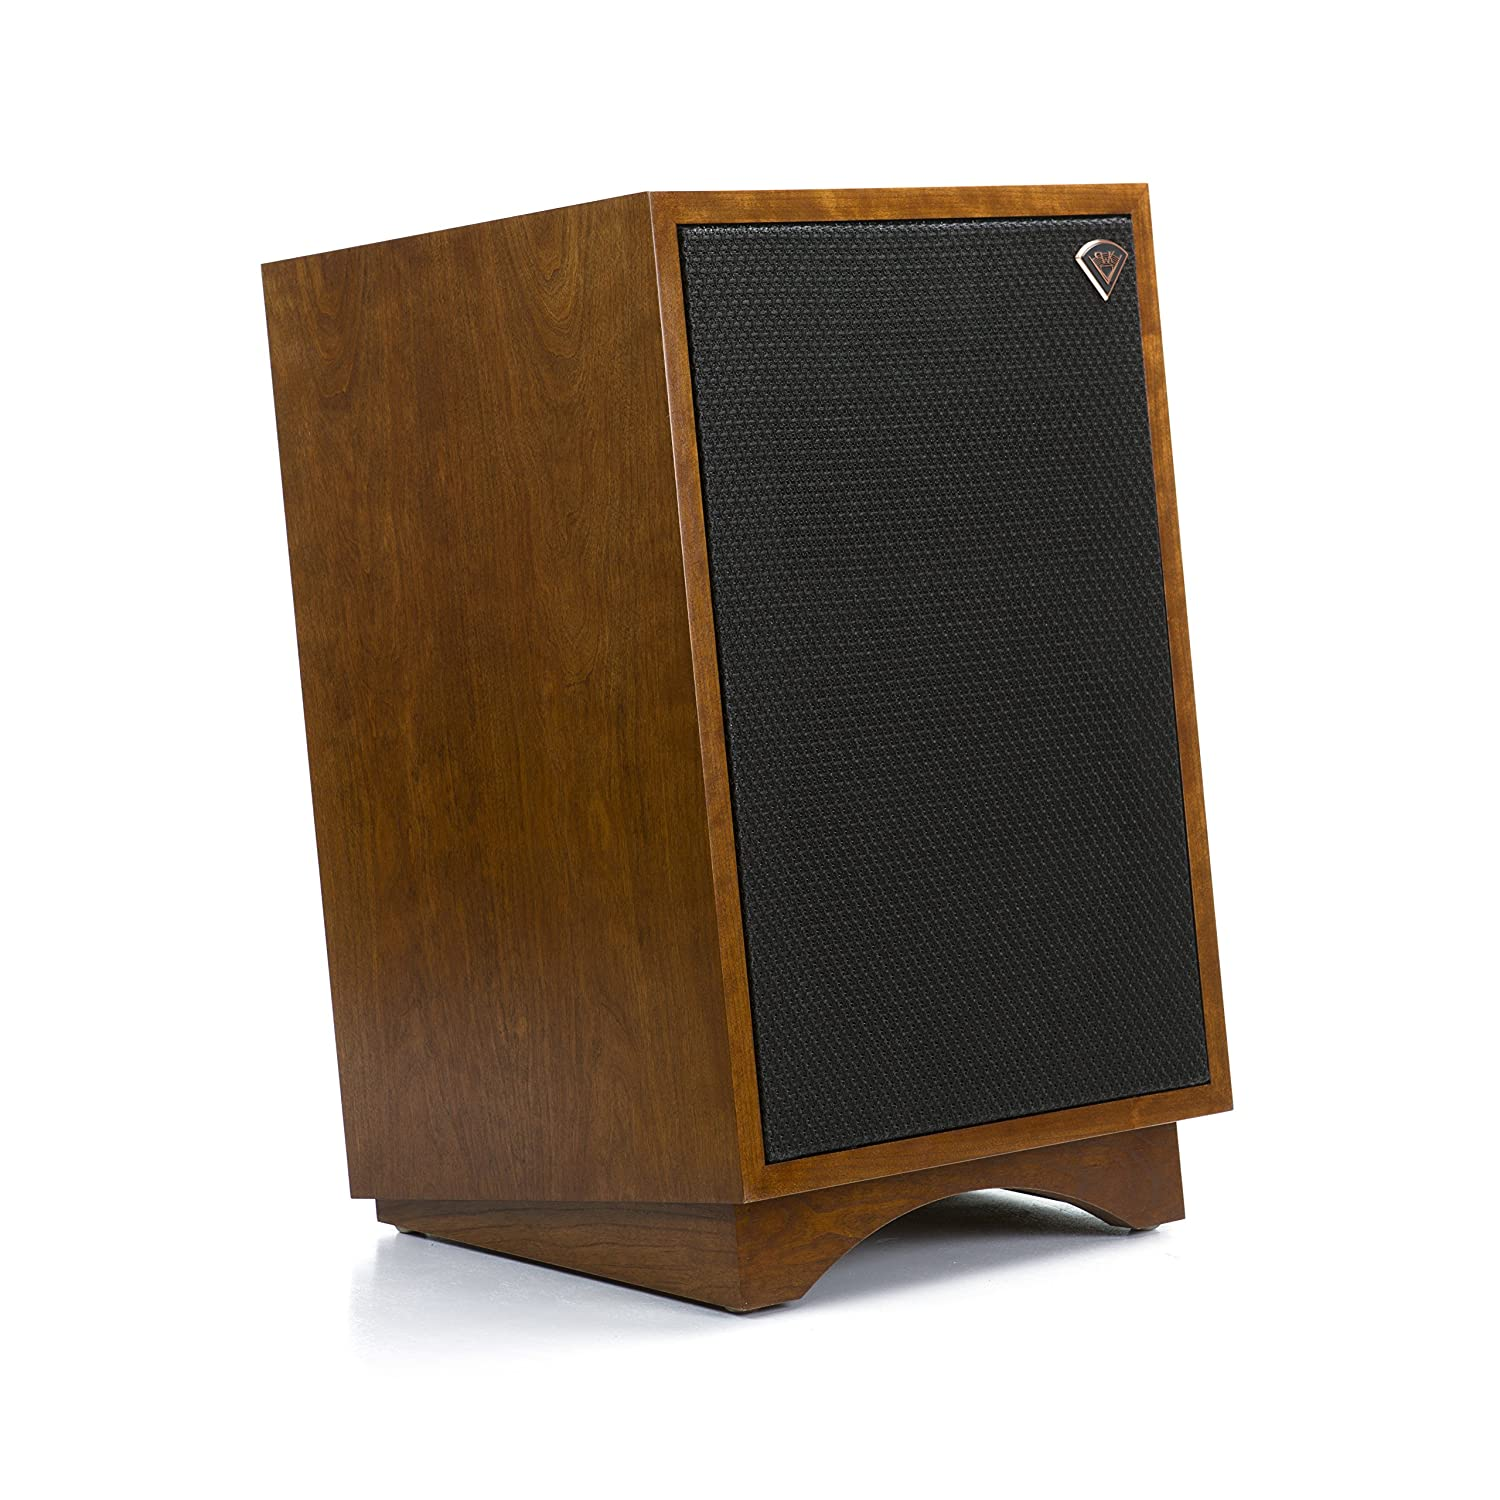 Klipsch Heresy III Speaker Black Friday Deal 2020